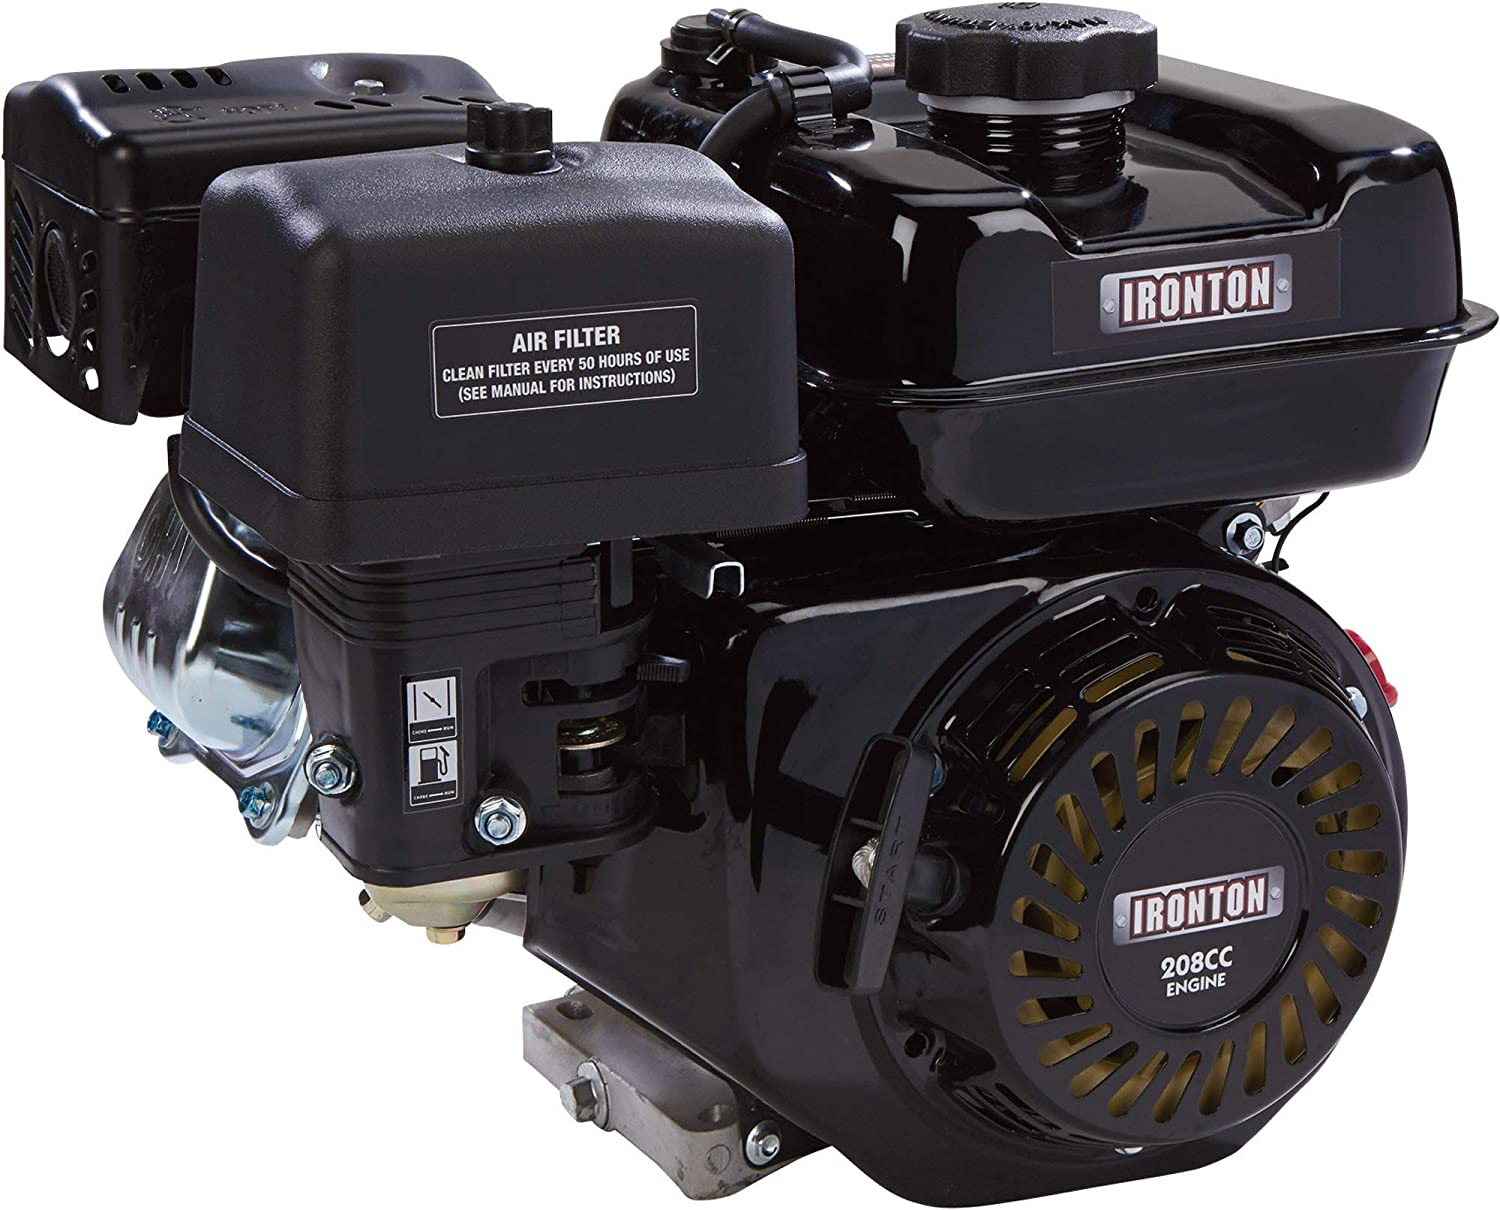 Ironton OHV Horizontal Engine x 2 19//64in. 19.05mm 58.5mm 3//4in. 208cc Shaft